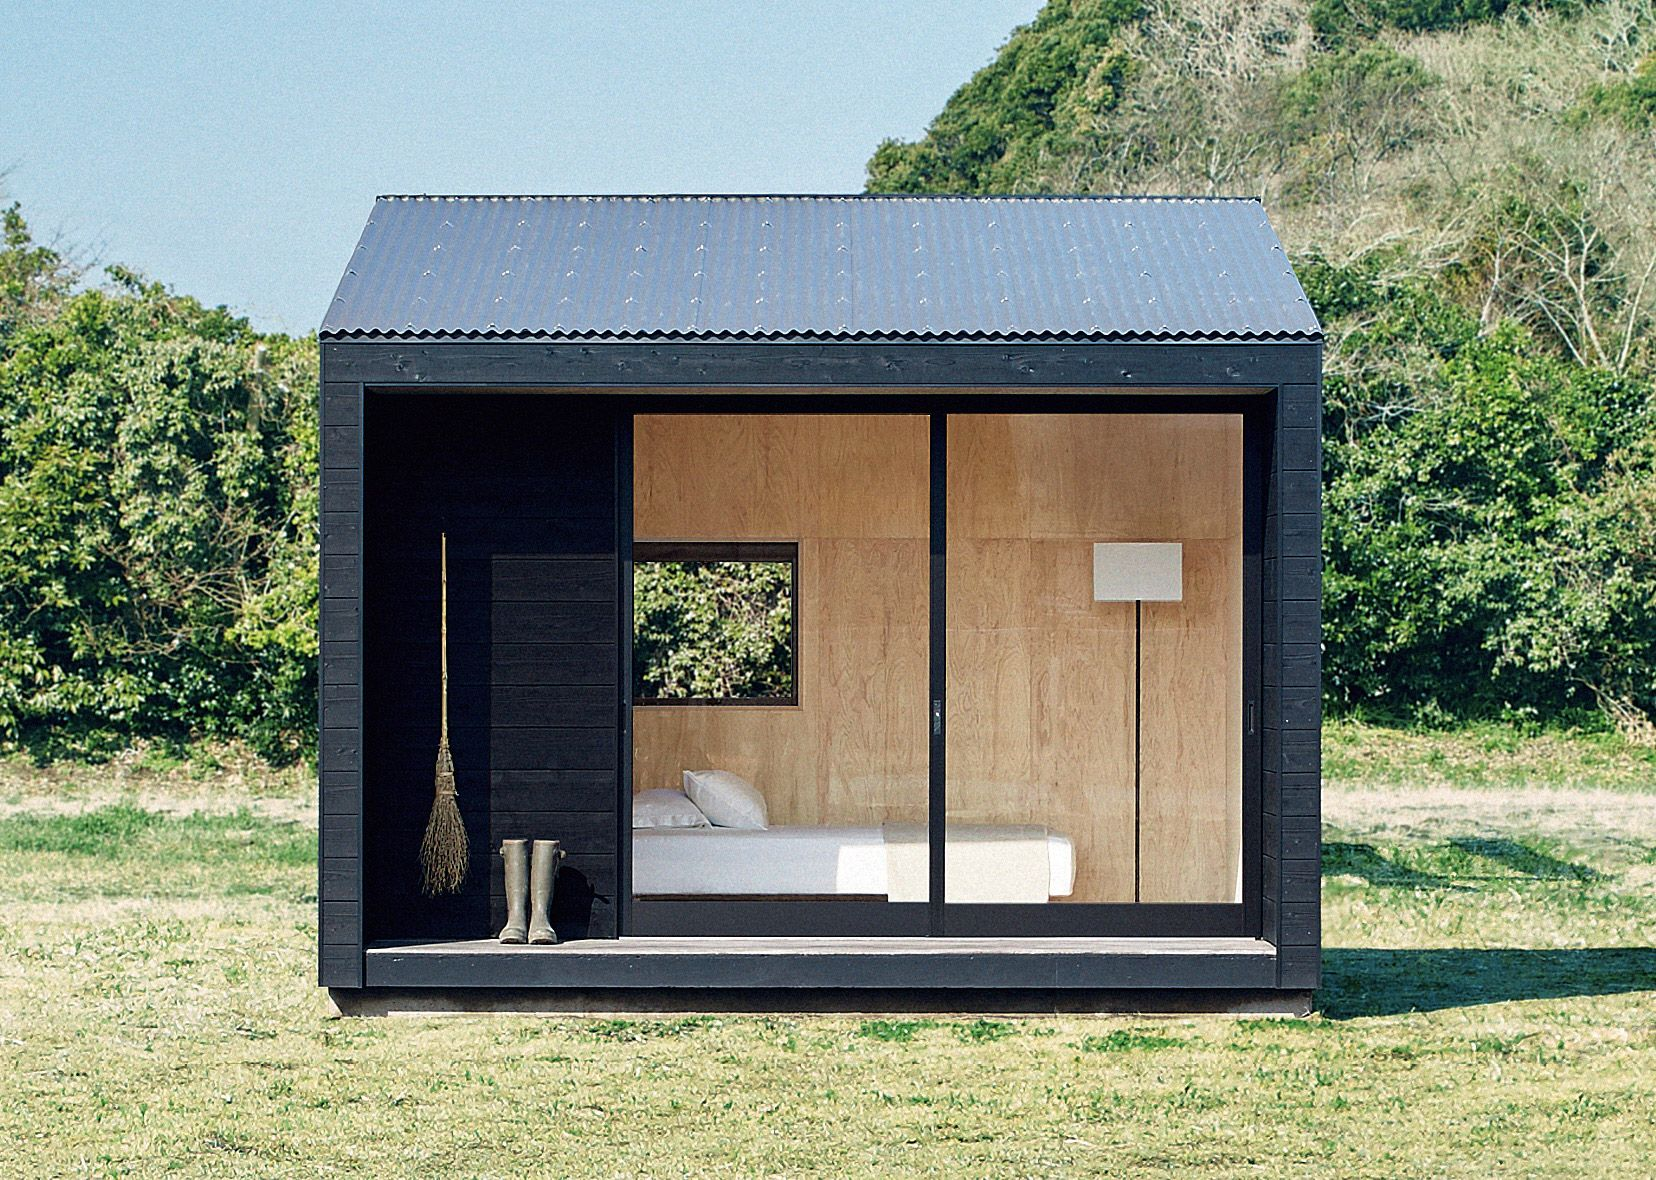 Muji's new 'tiny home' will go on sale this autumn in Japan ... on dream house japan, building japan, narrow house designs in japan, small house japan, micro house japan, glass house japan, apartment japan, travel japan, tiny houses new york, photography japan, garden japan, food japan, dining room japan, money japan, office japan, japanese house in japan, modern japan, fishing japan, tree japan, swimming pool japan,